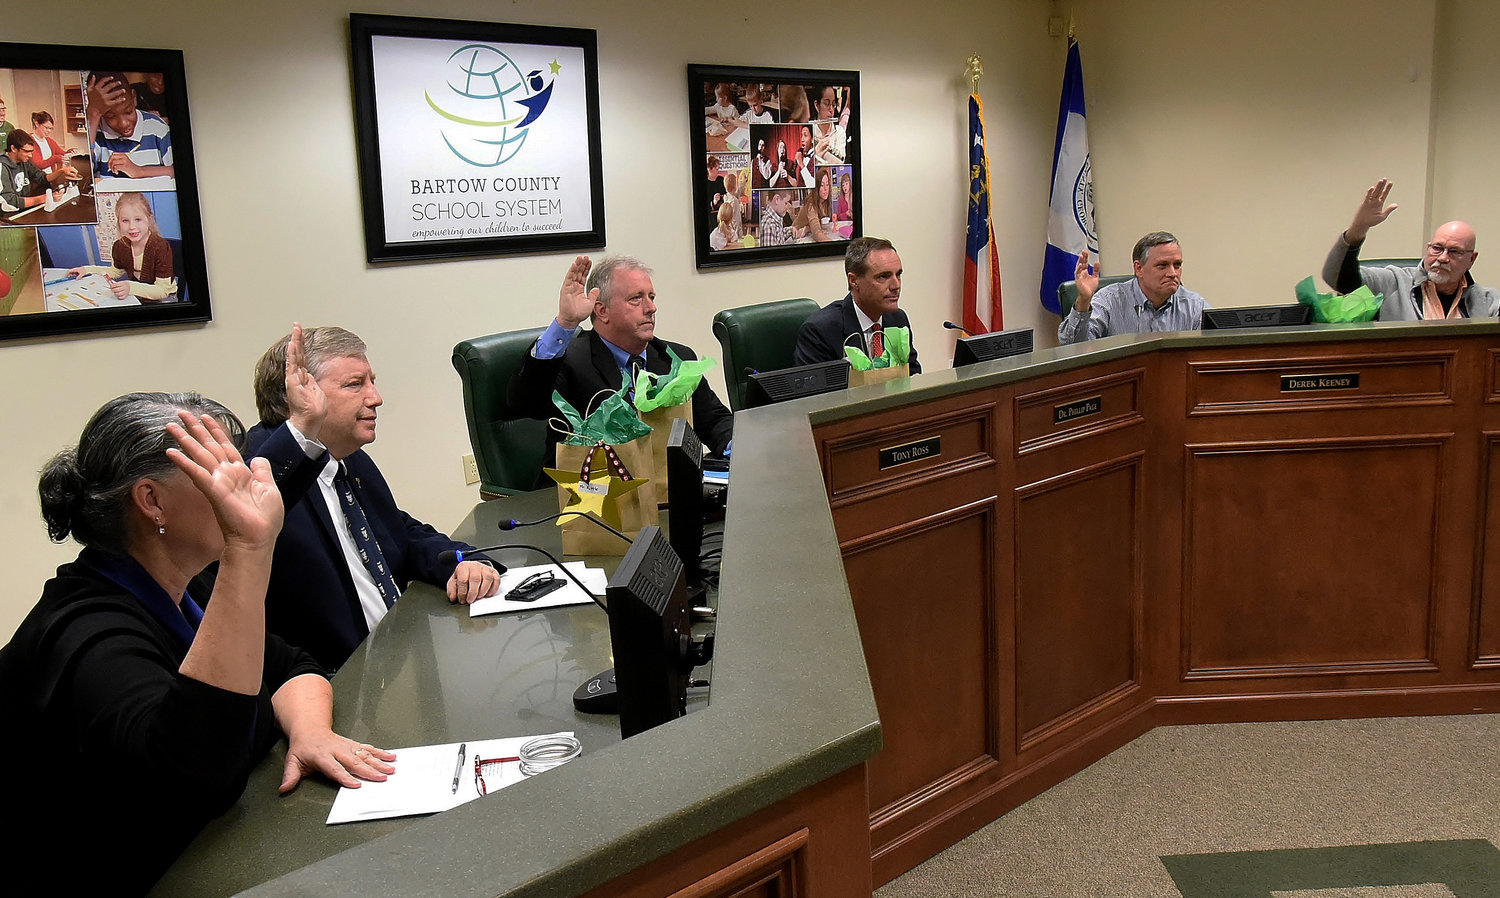 At Monday's meeting, the Bartow County Board of Education voted to appoint board member Fred Kittle as chairman and board member Derek Keeney as vice chairman for the upcoming term. Present at the meeting were, from left, board member Anna Sullivan, Kittle, board member Tony Ross, superintendent Dr. Phillip Page, Keeney and board member Terry Lee Eggert.